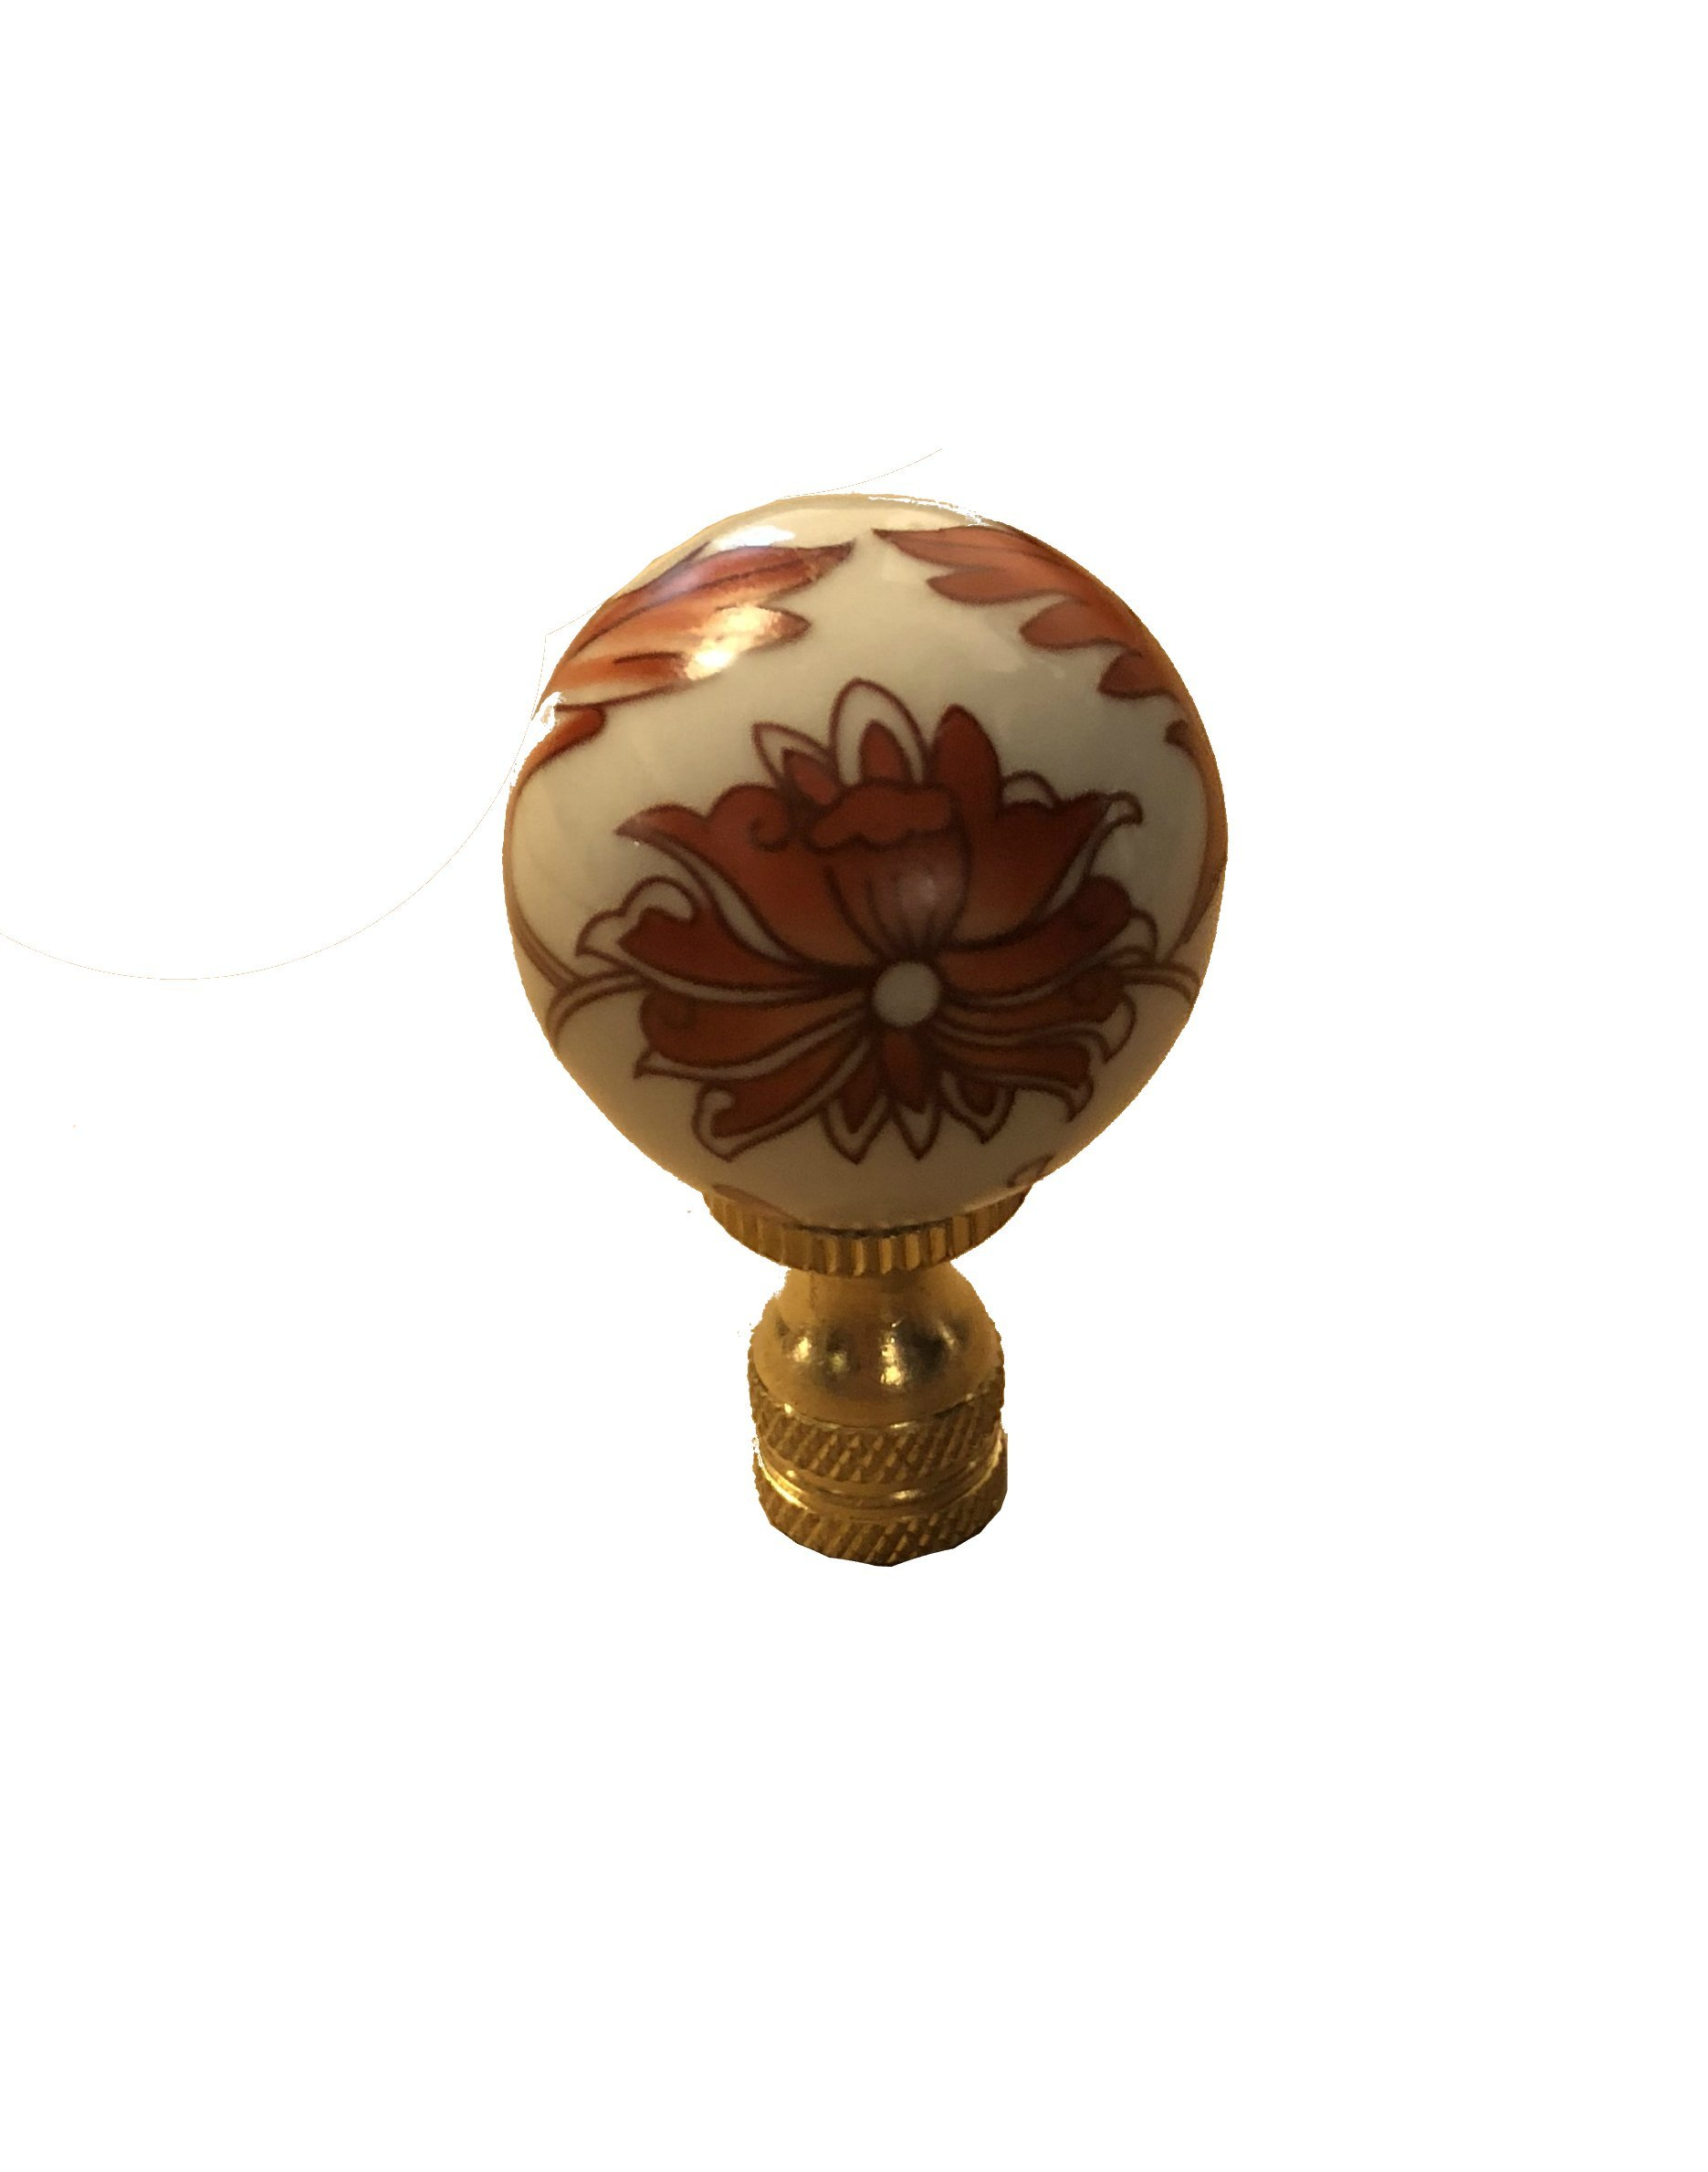 White Scroll Chinoiserie Finial Lamp Shade Topper Porcelain Asian Chinese Pansy Daisy Impatian Floral Leaf Motif Oriental Lamp